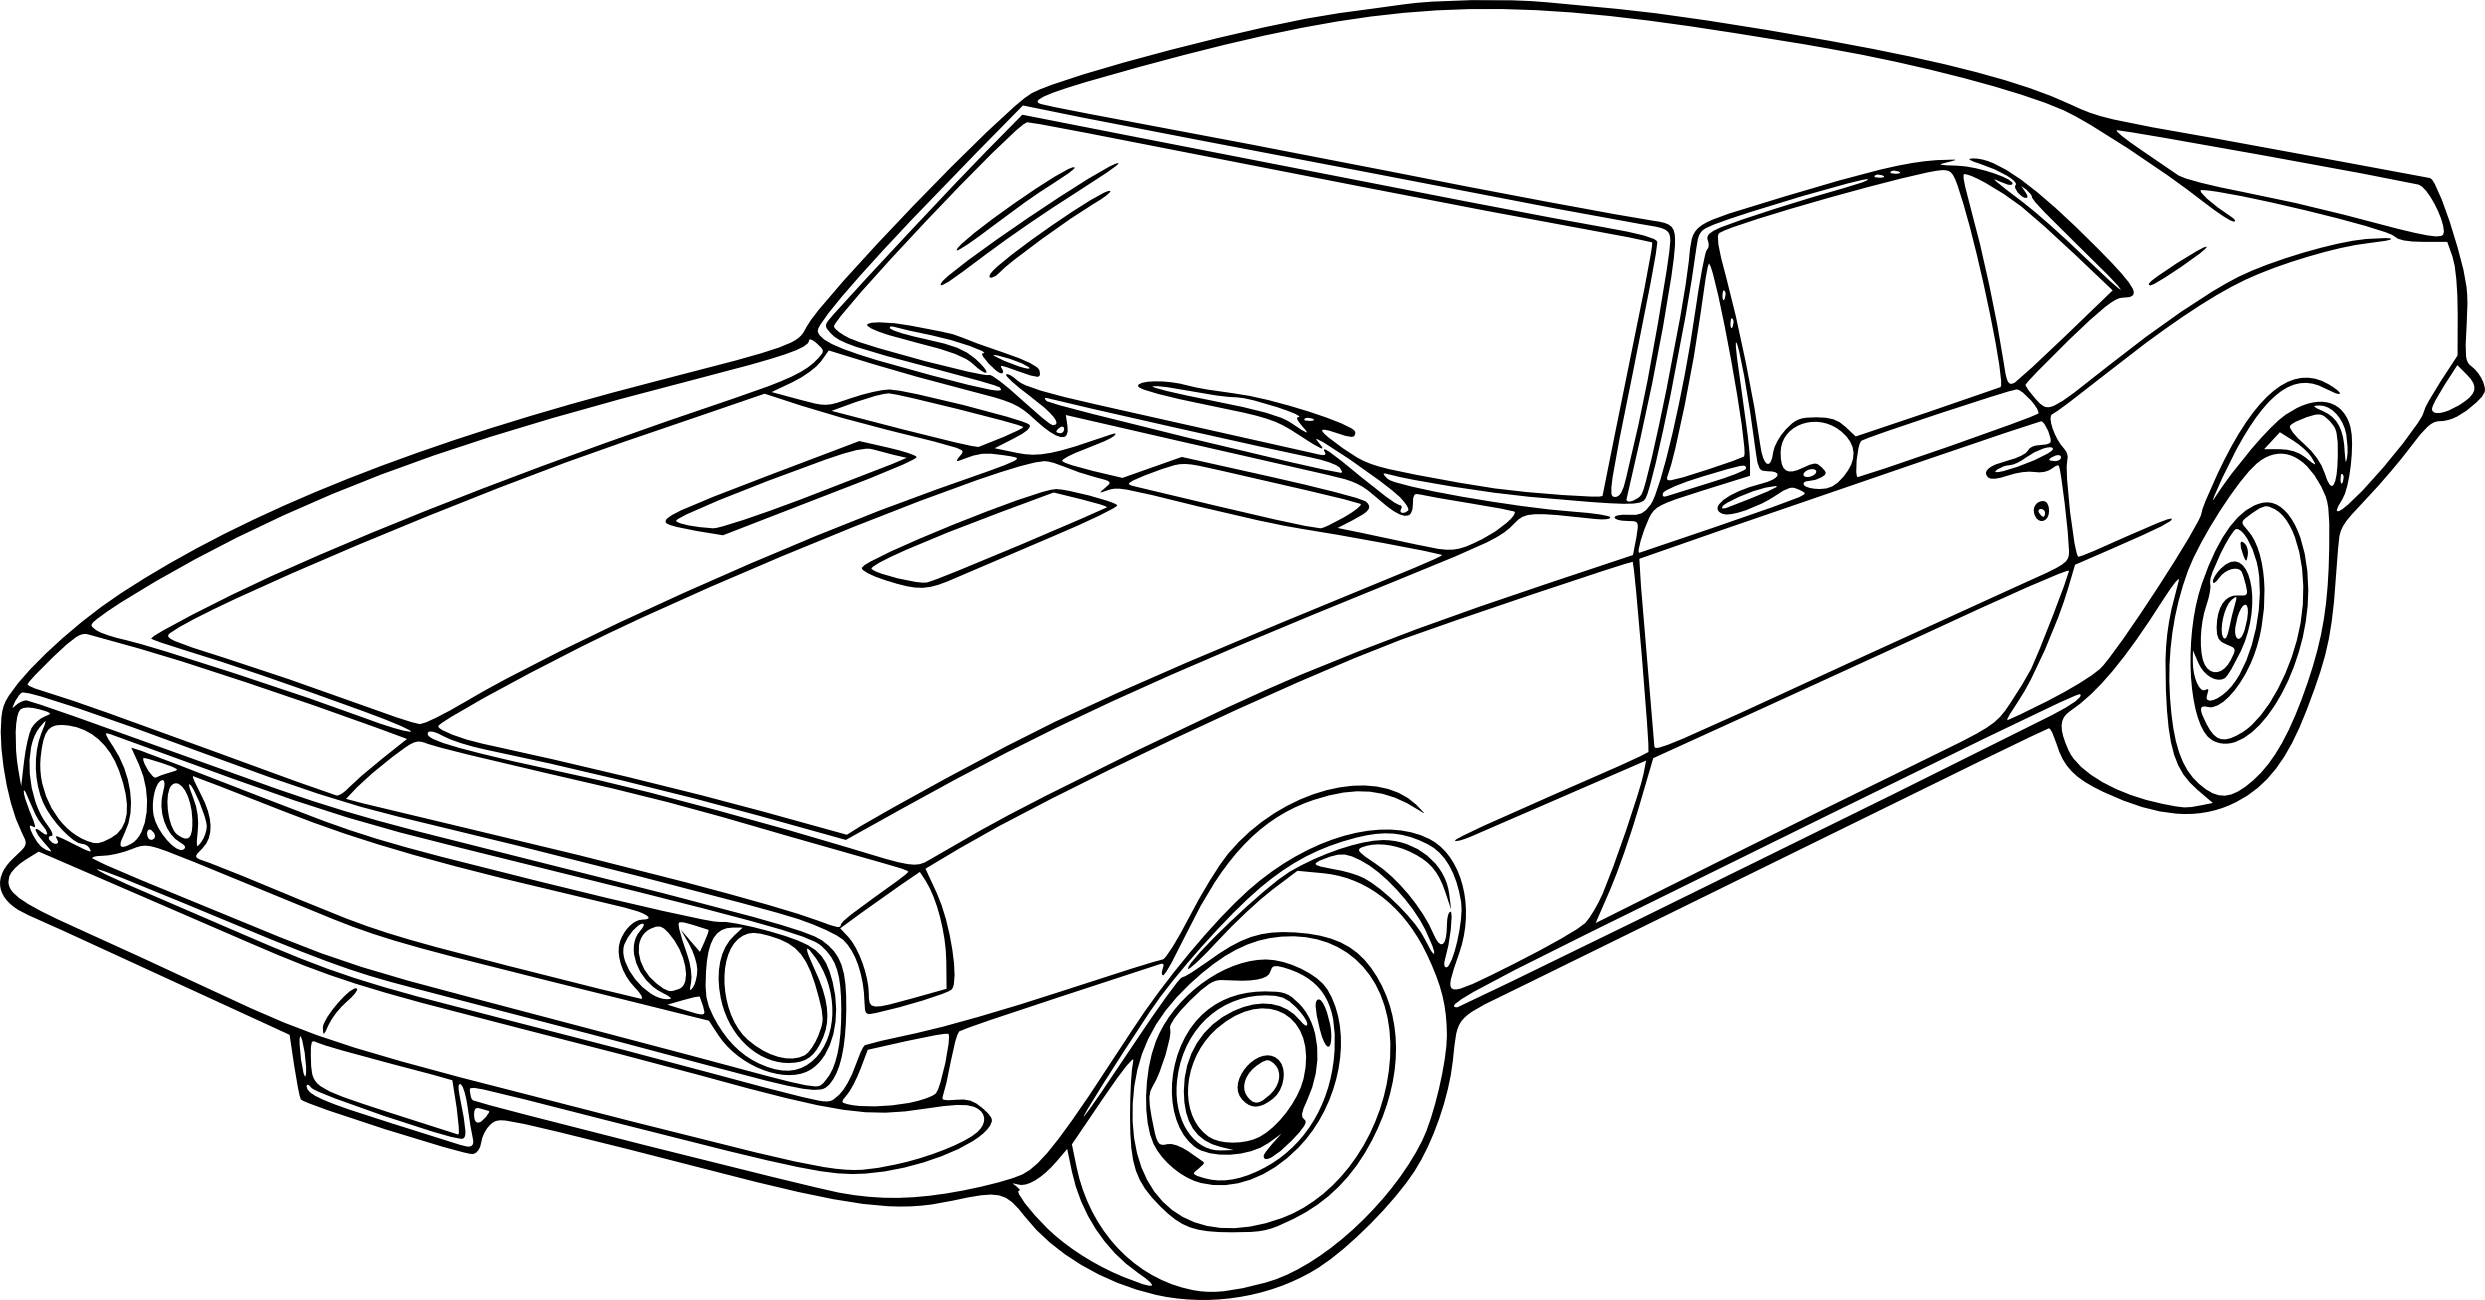 paul walker coloring pages | Fast And Furious Drawing at GetDrawings.com | Free for ...